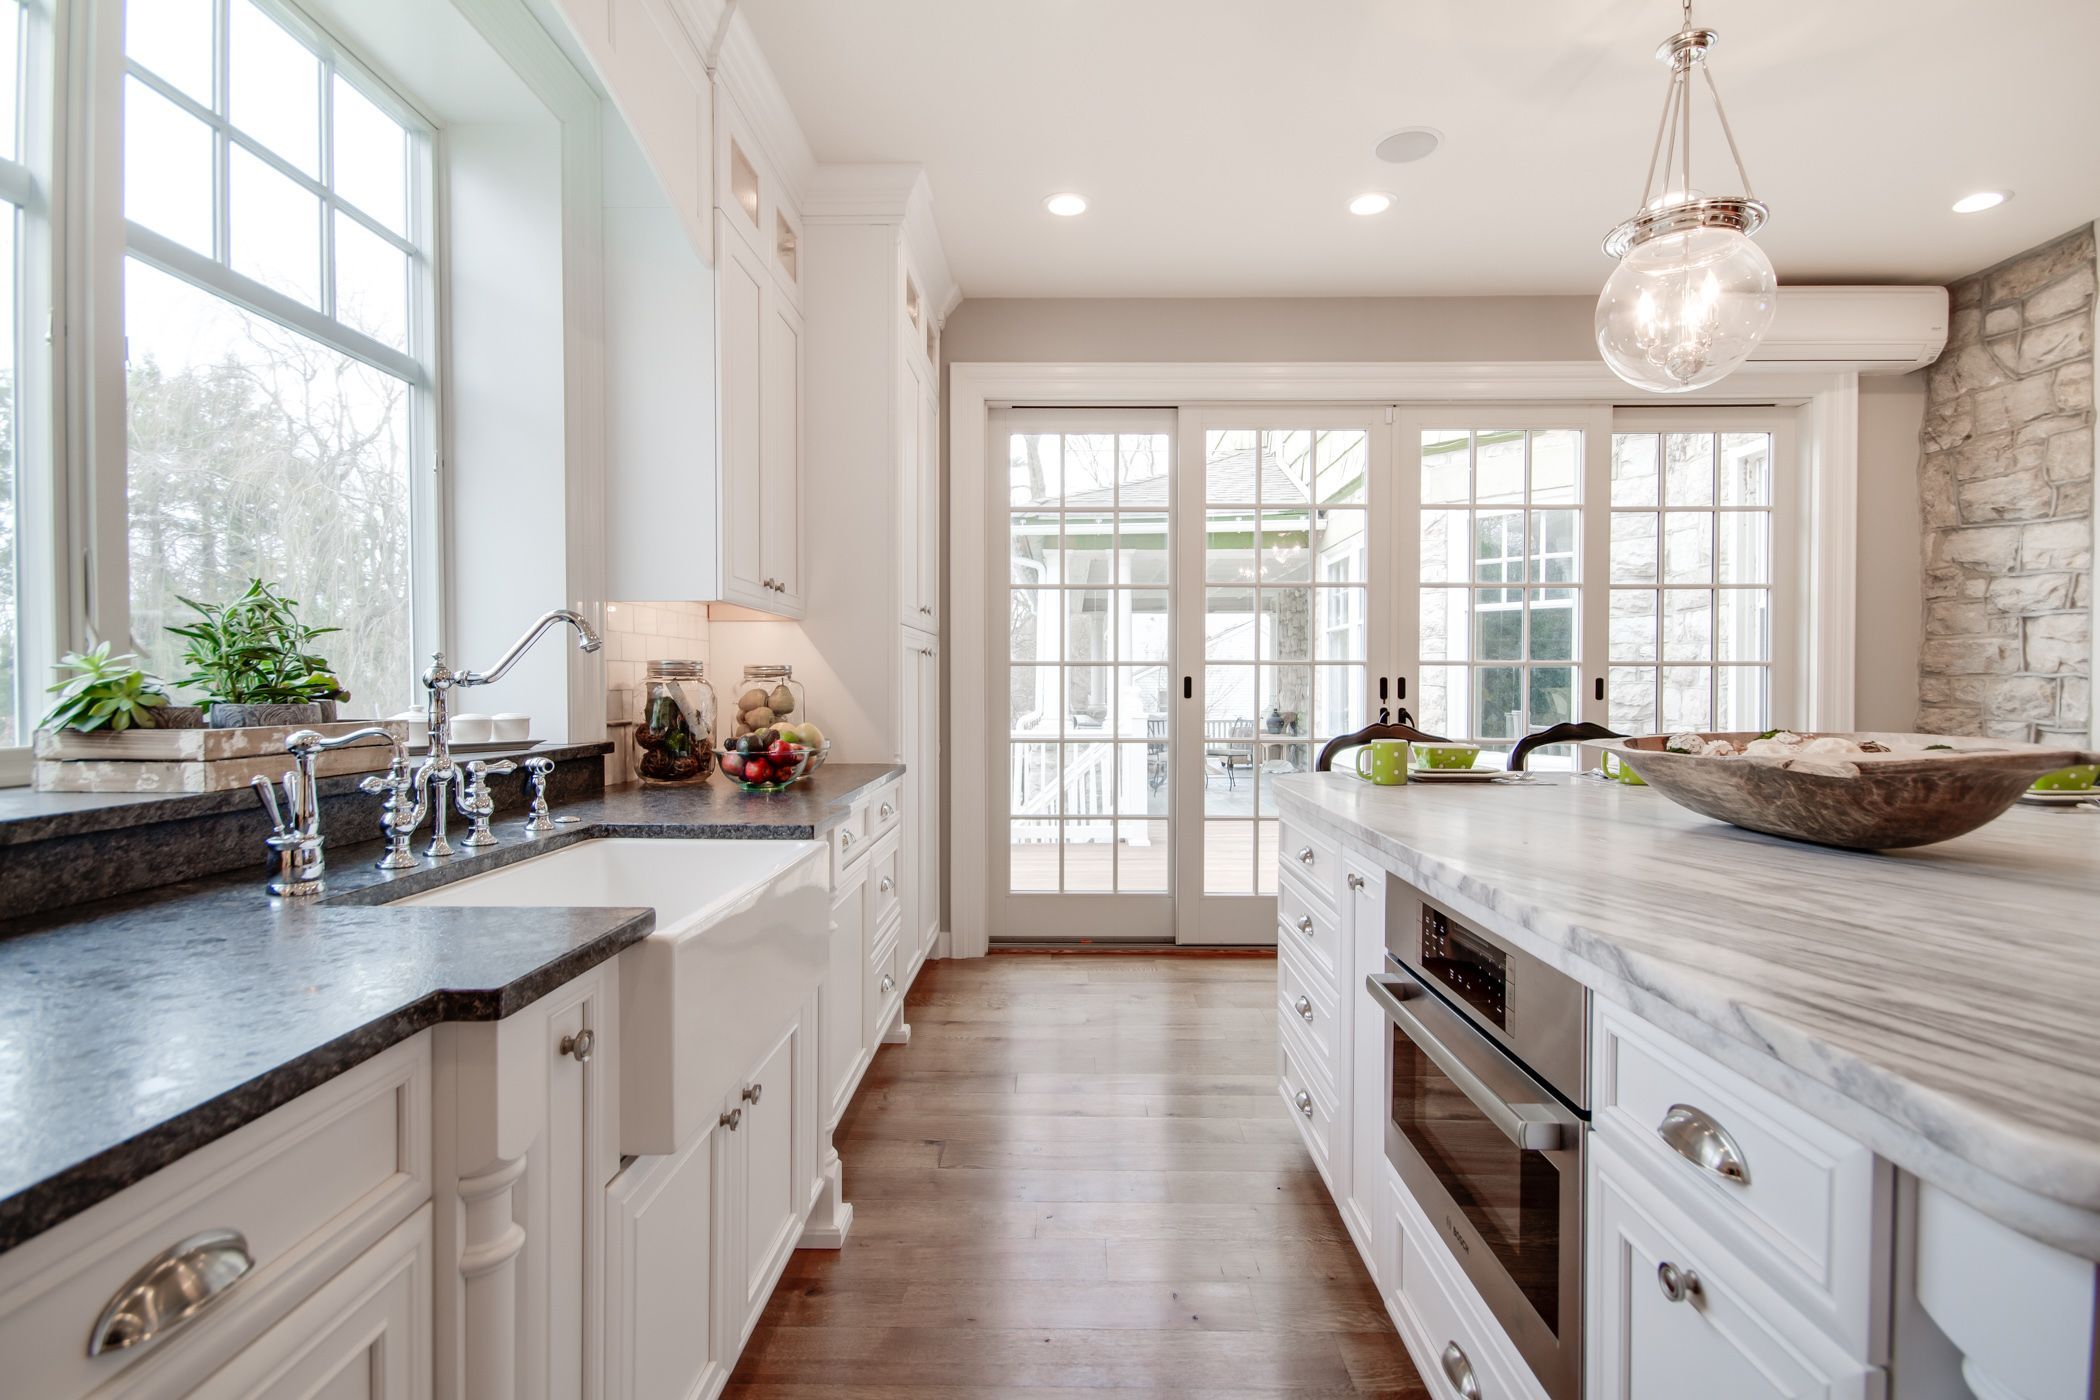 Discount Granite Countertops Nj This Bright White Kitchen Features A Mont Blanc Honed